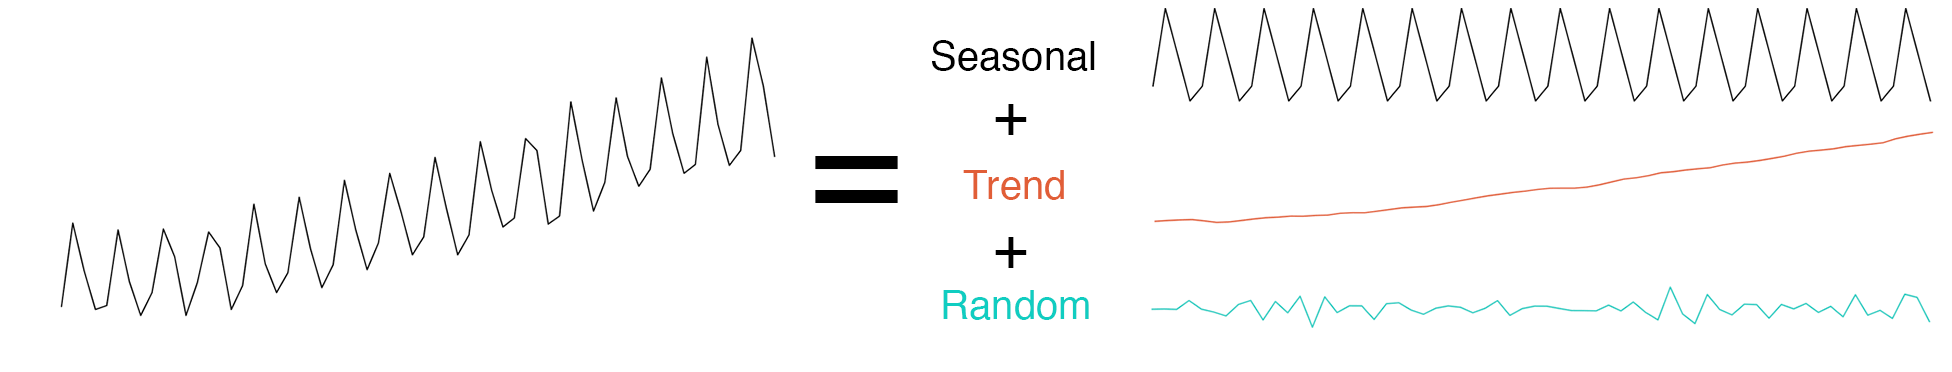 Extracting Seasonality and Trend from Data: Decomposition Using R